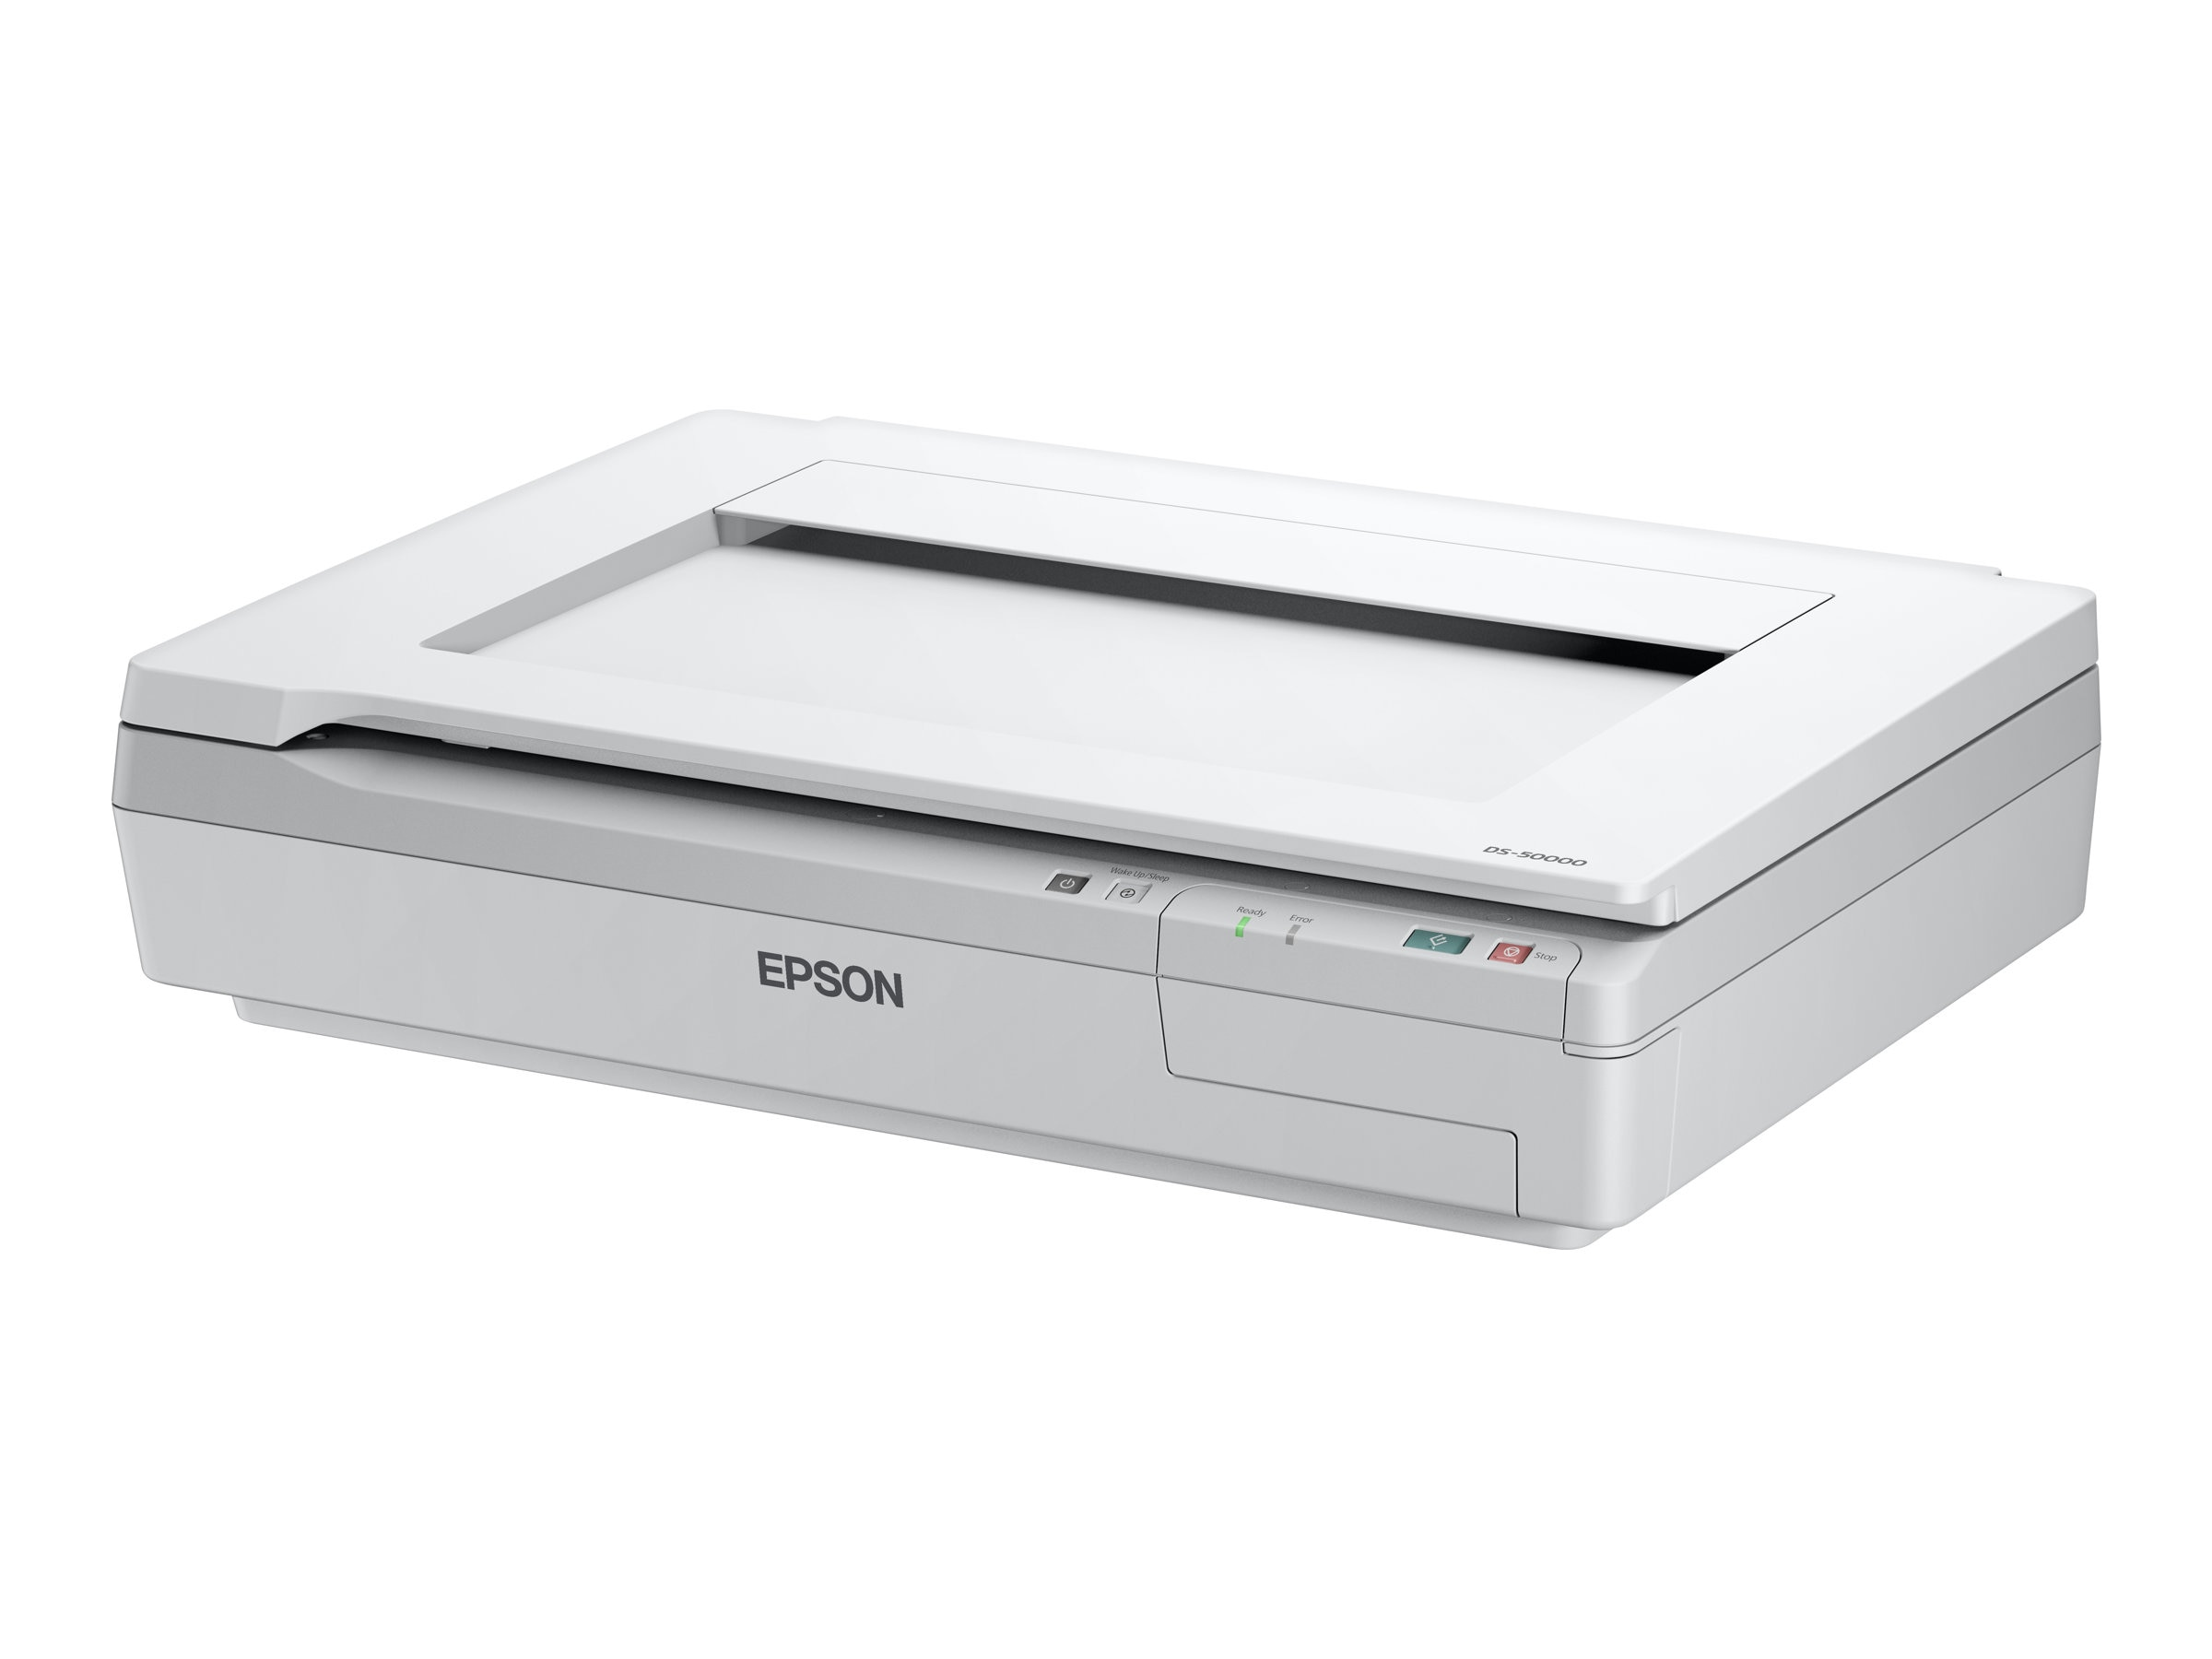 Epson Workforce DS-50000 Scanner - $1499 less instant rebate of $60.00, B11B204121